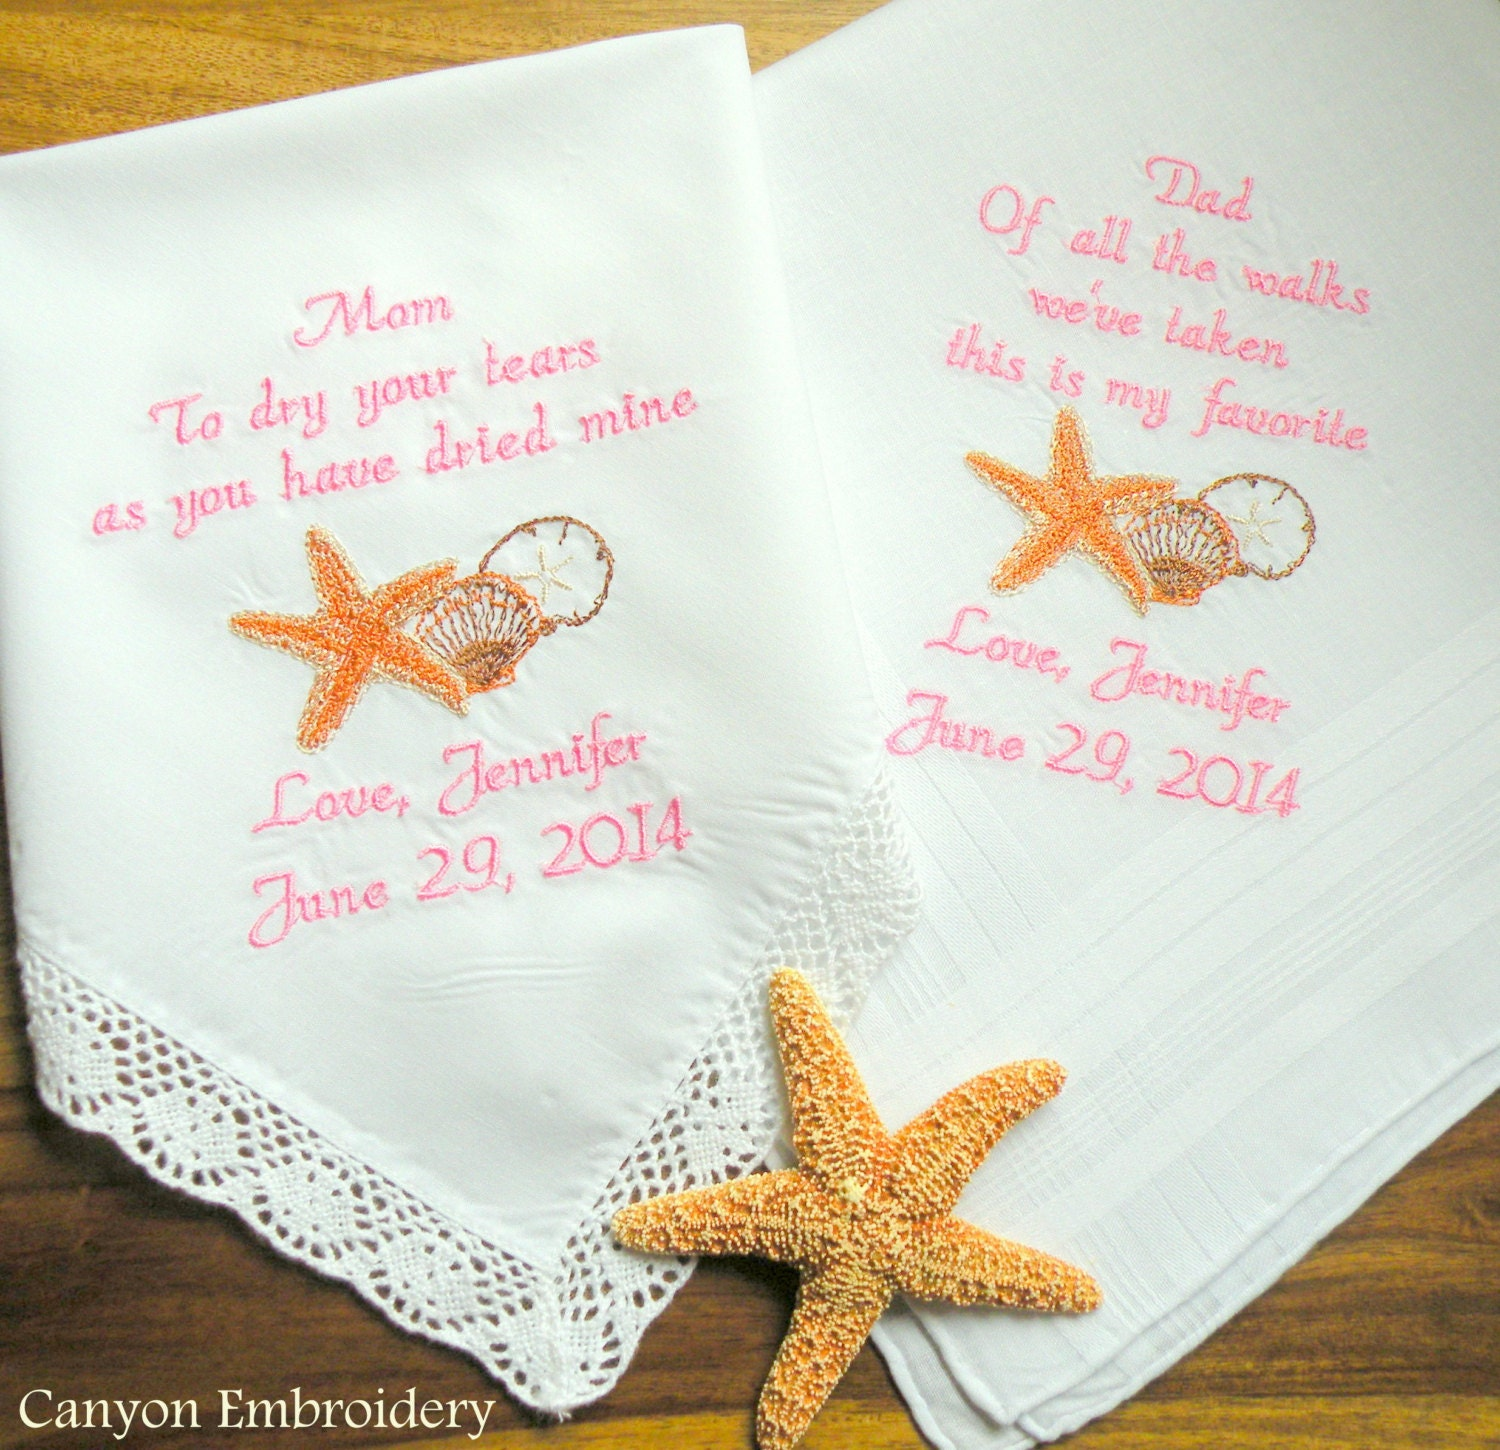 Embroidered Wedding Handkerchiefs Beach Wedding Mother Of The Bride Father Of